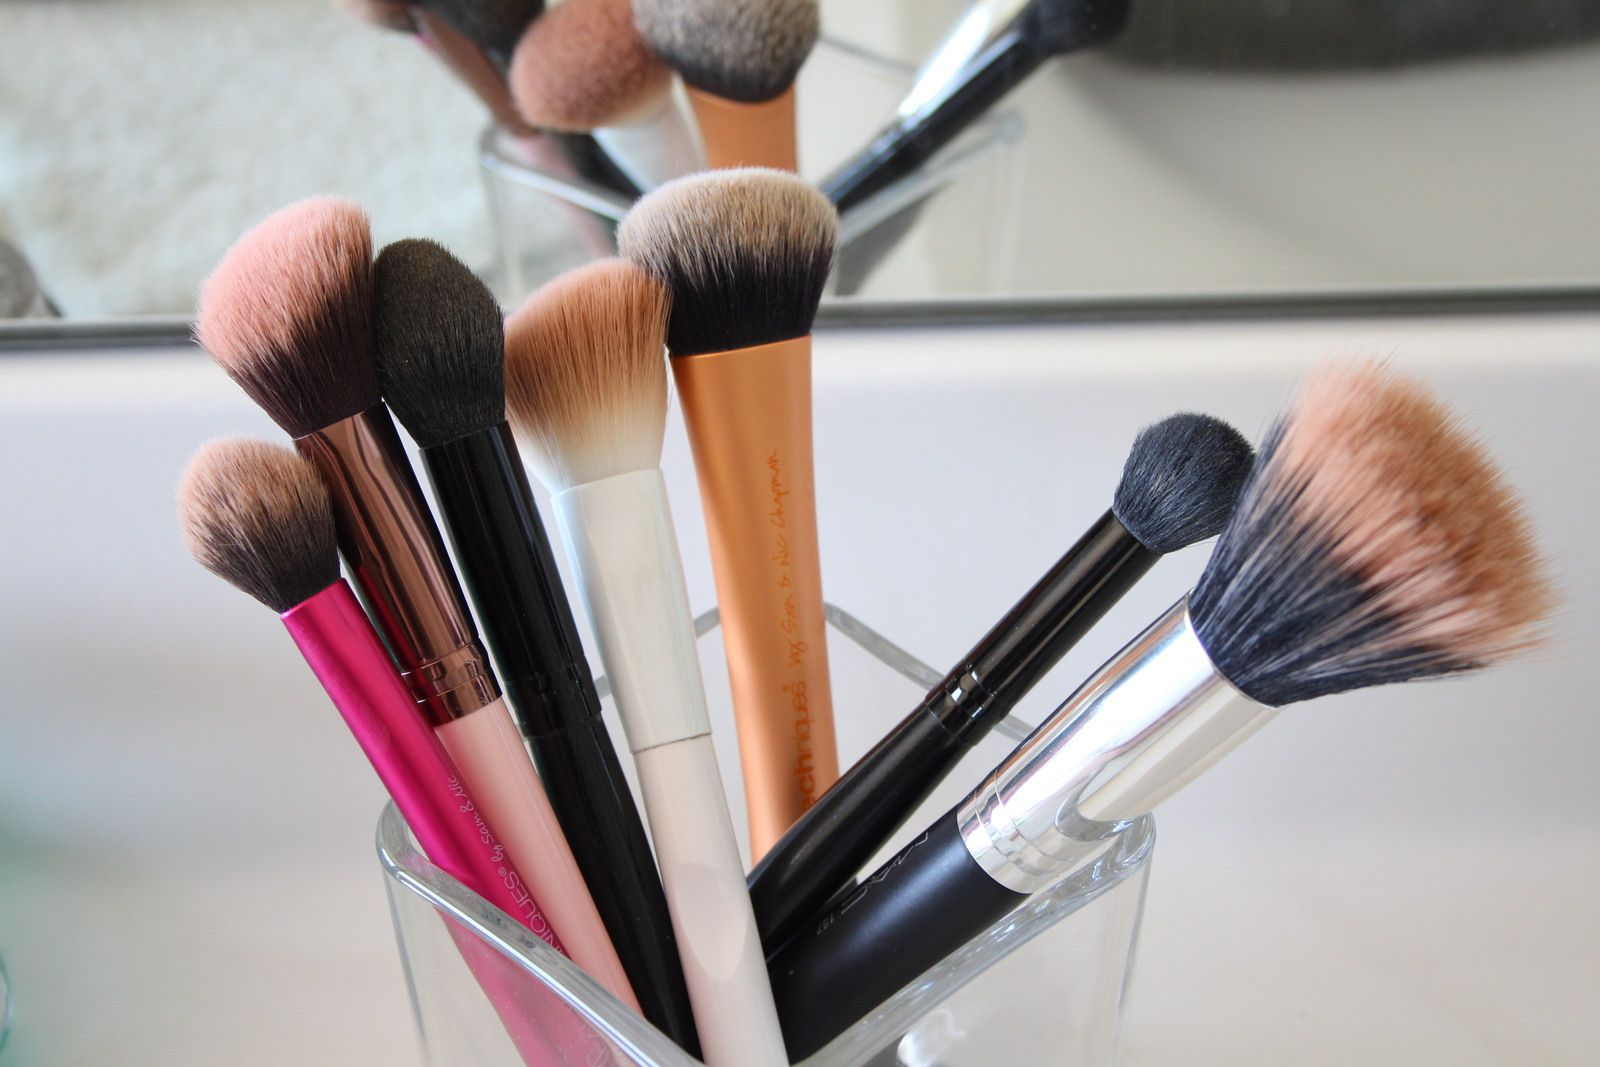 Everyday Makeup Brushes (My Favorites)